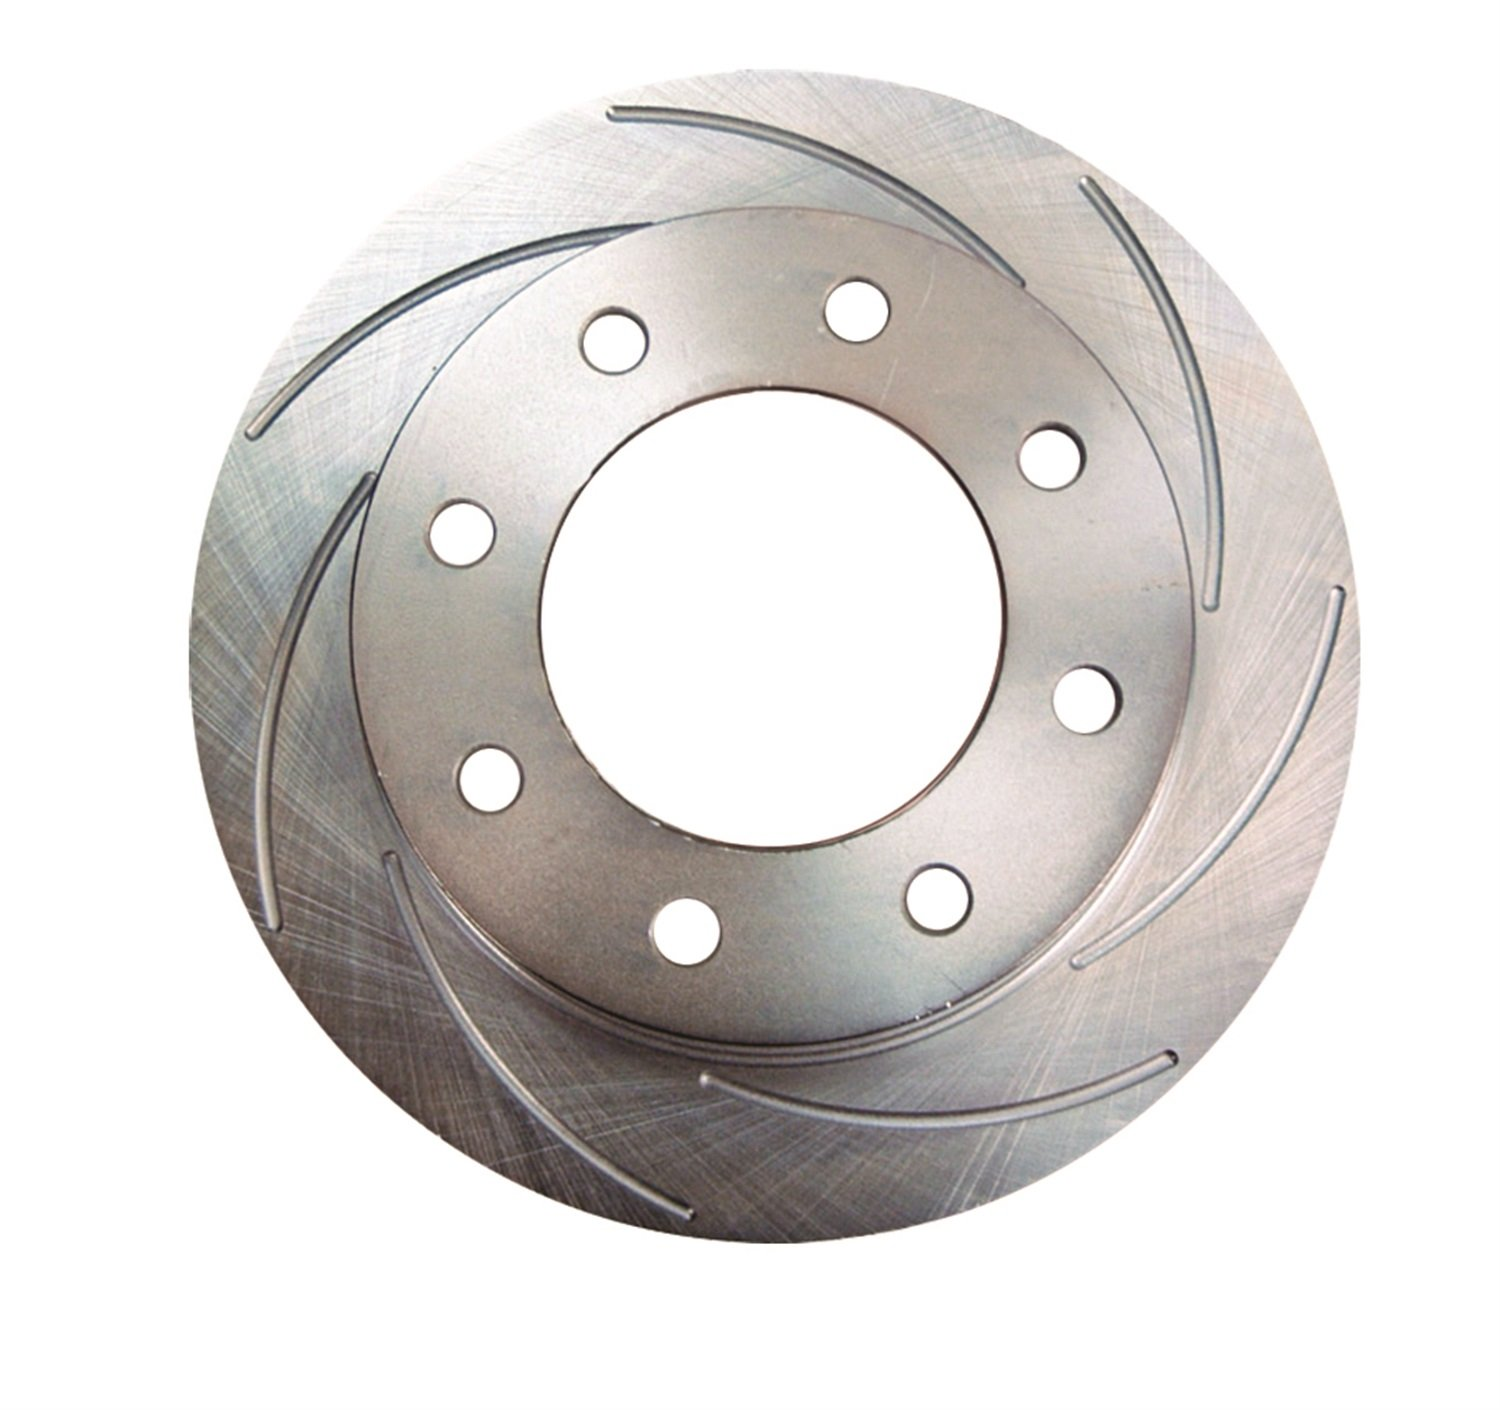 SSBC 23468AA2R Big Bite Cross Drilled Rotor Stainless Steel Brakes